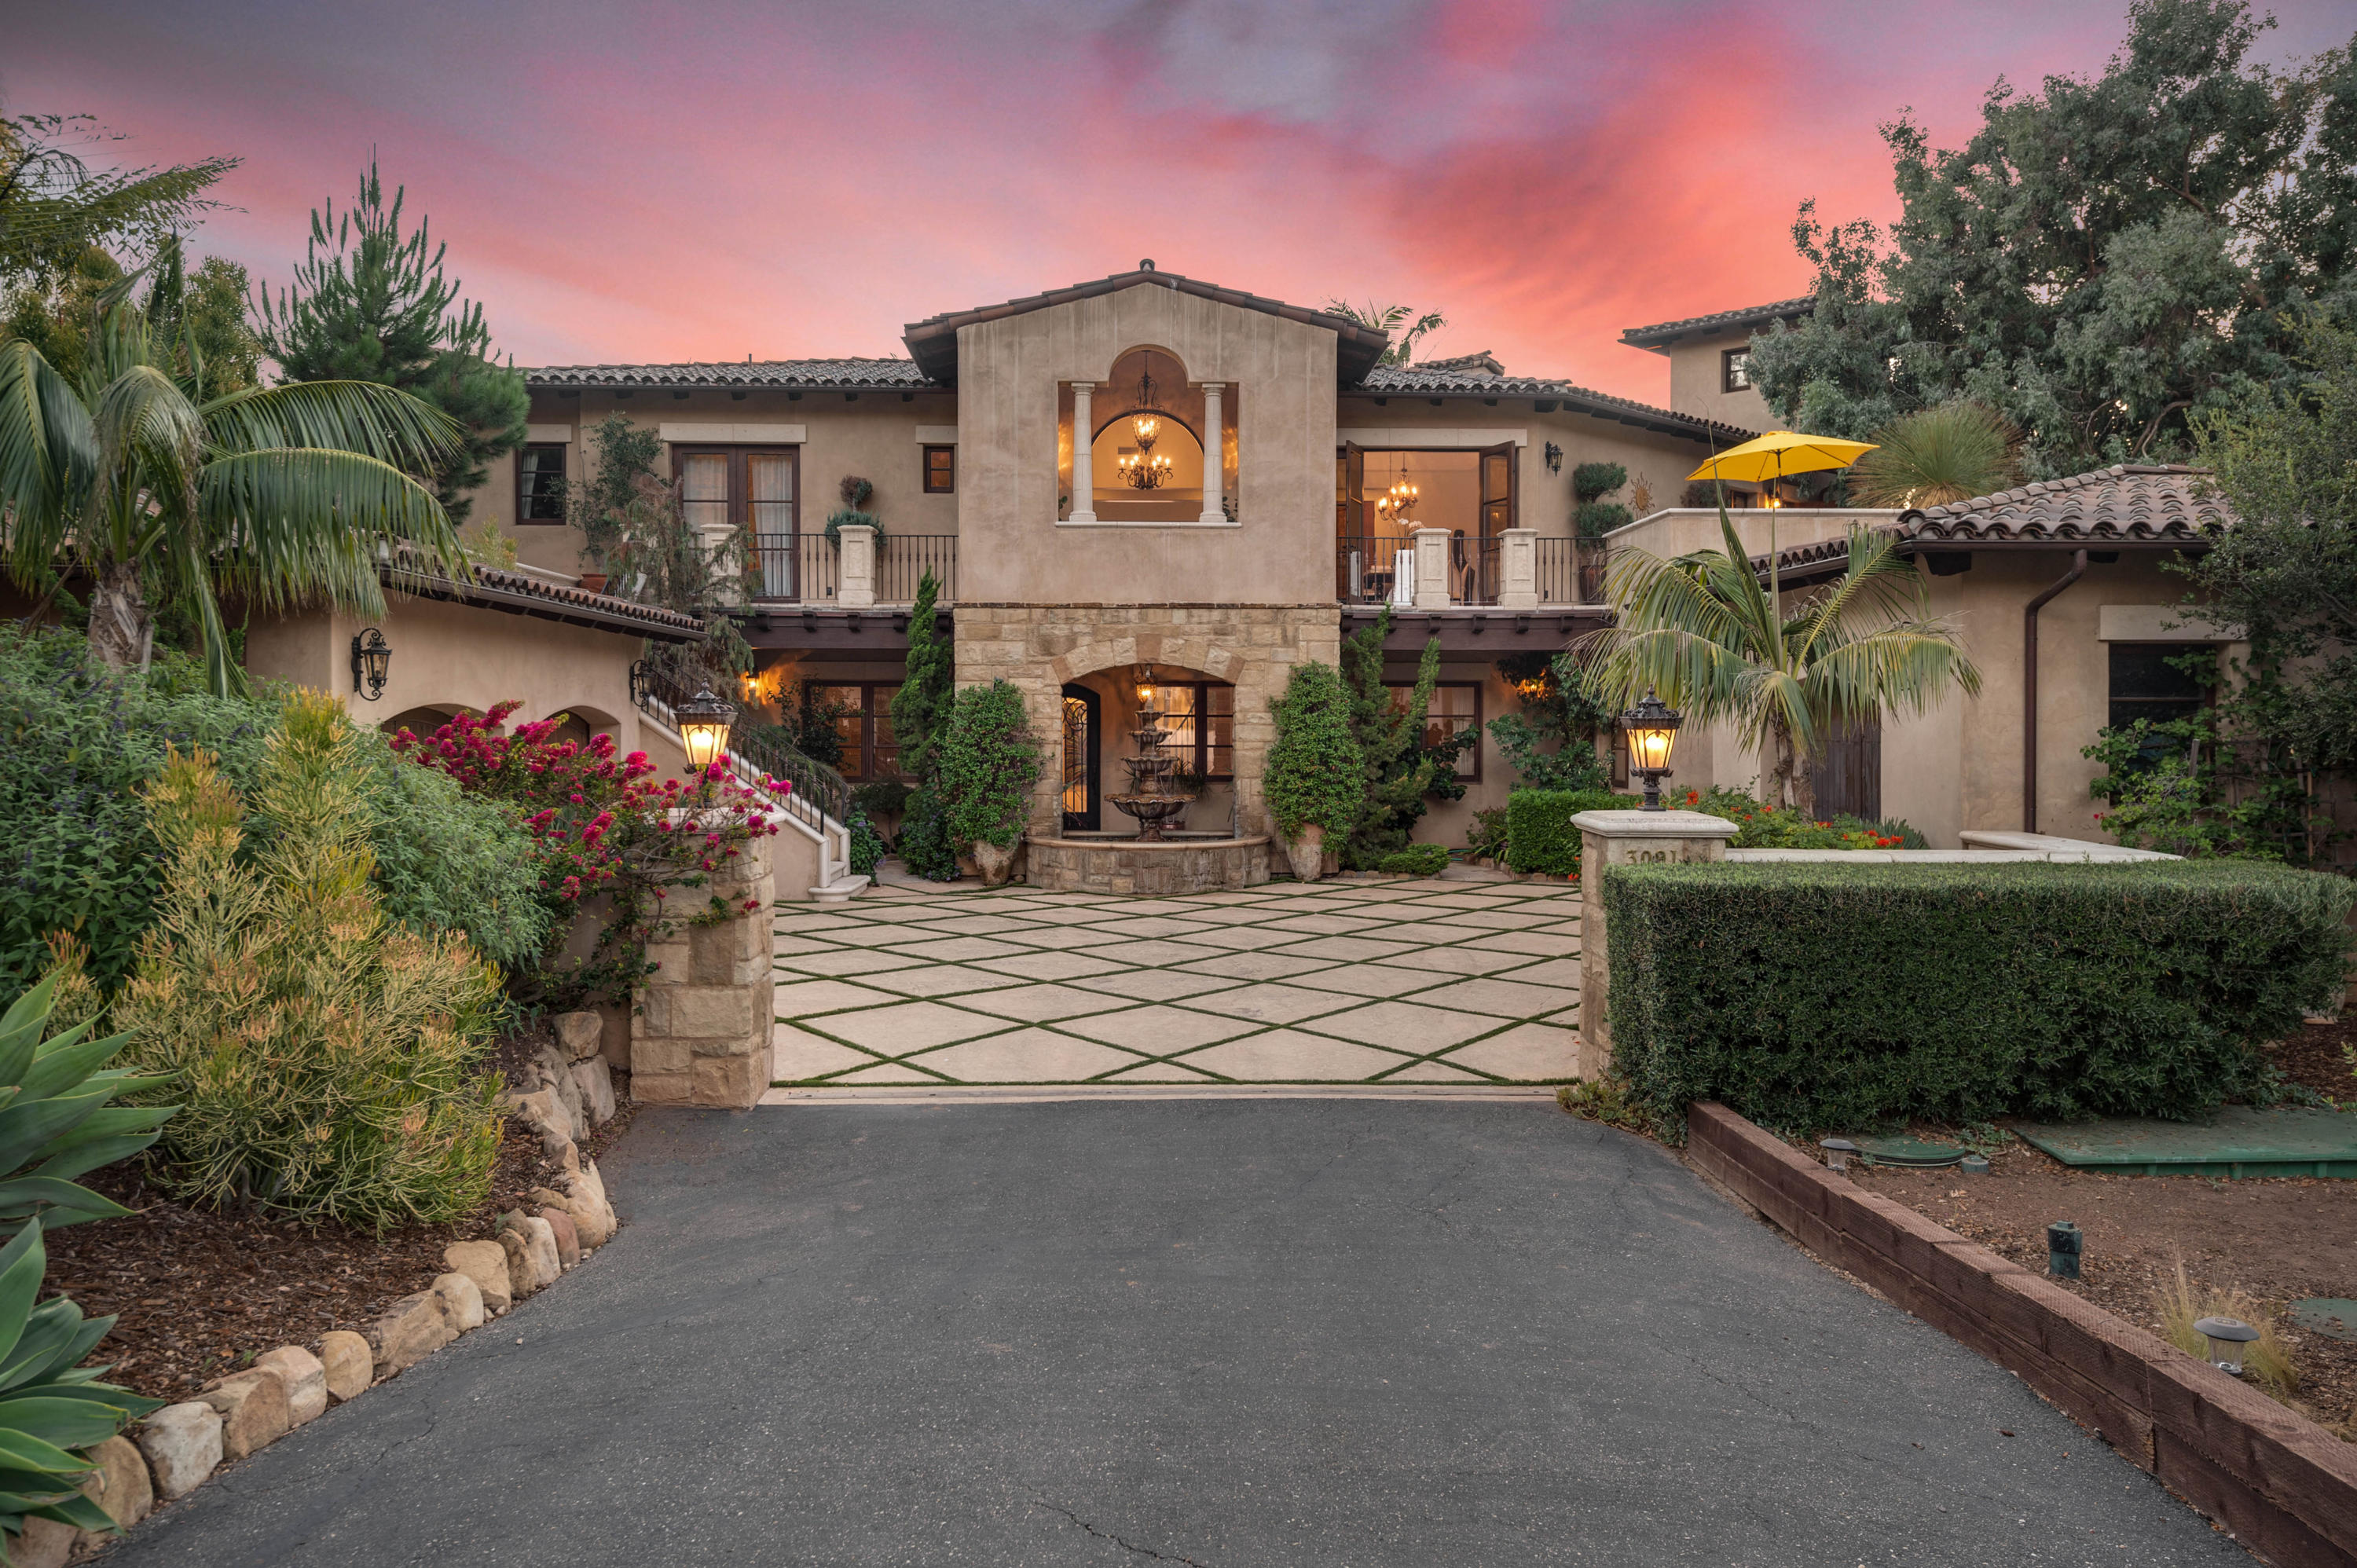 3091 Hidden Valley Ln - Montecito, California